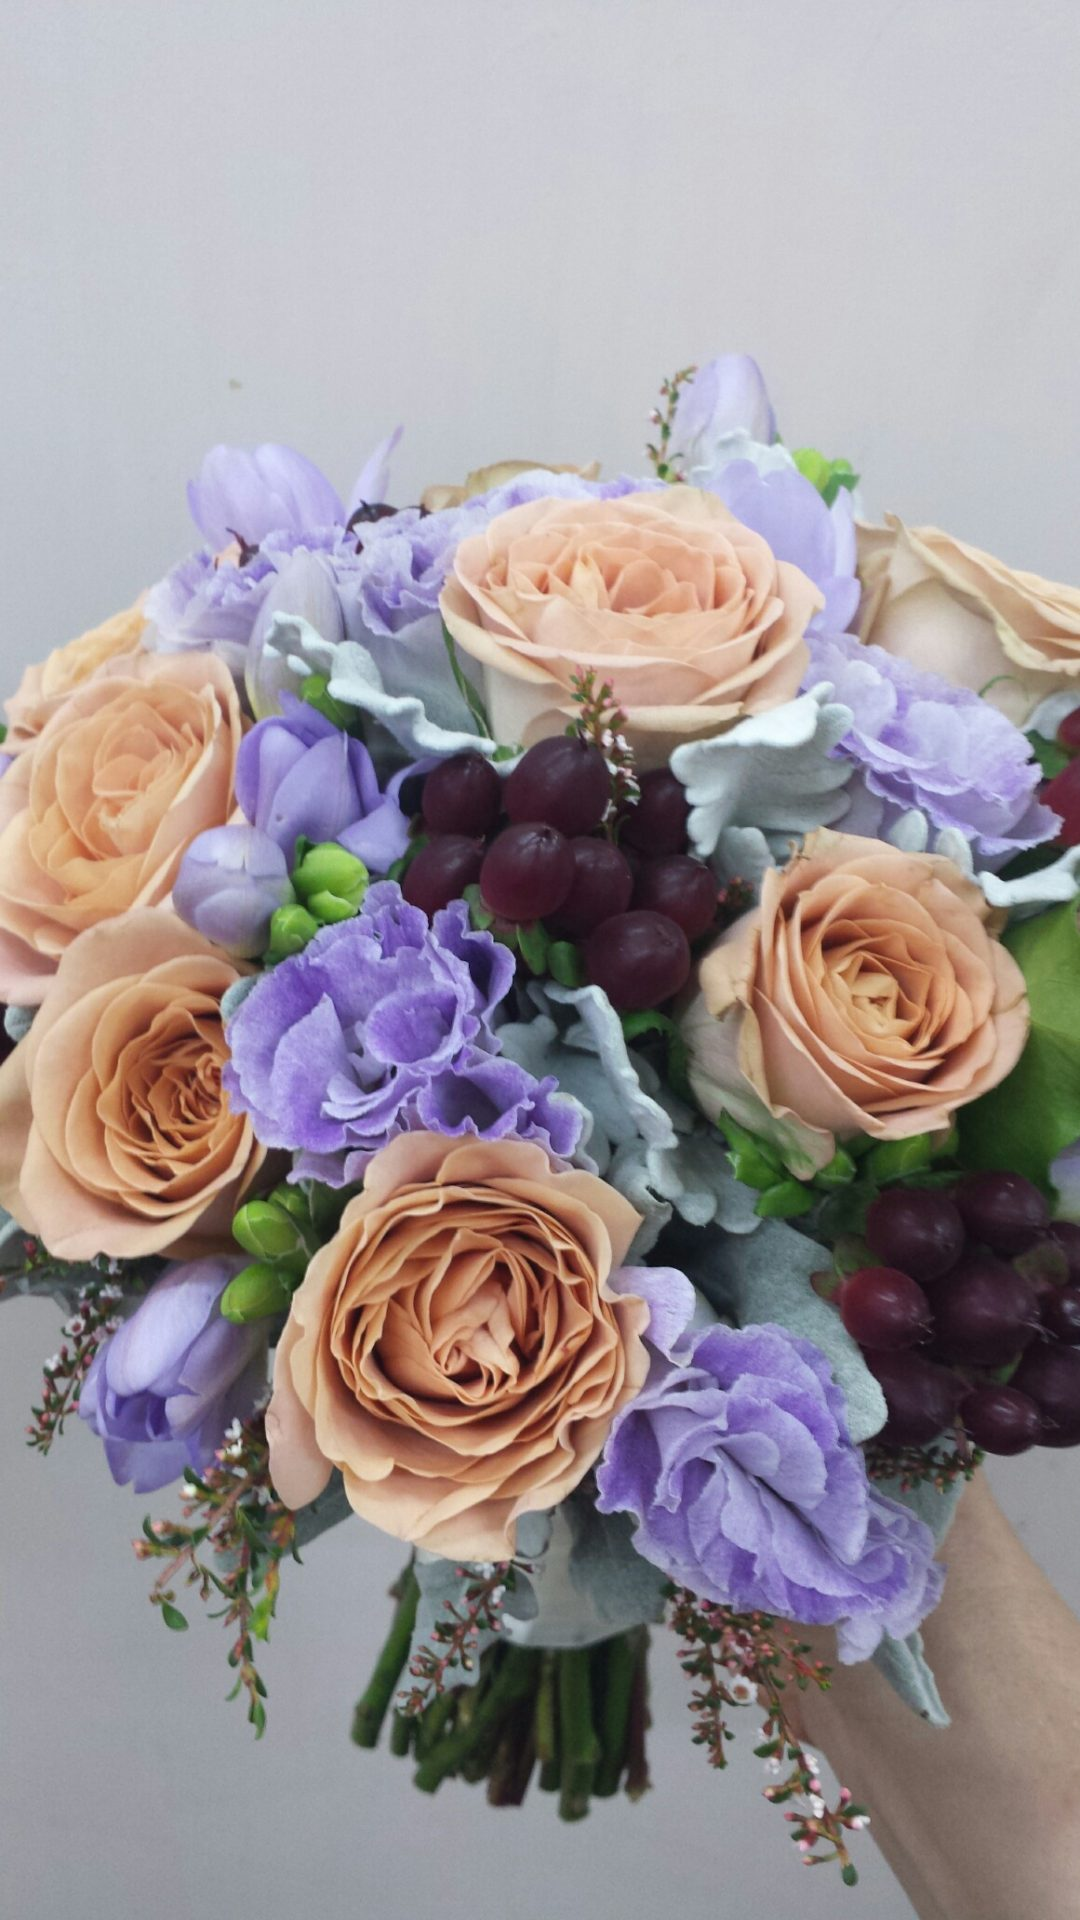 Honeymoon roses, mauve lisianthus and hypericum berry